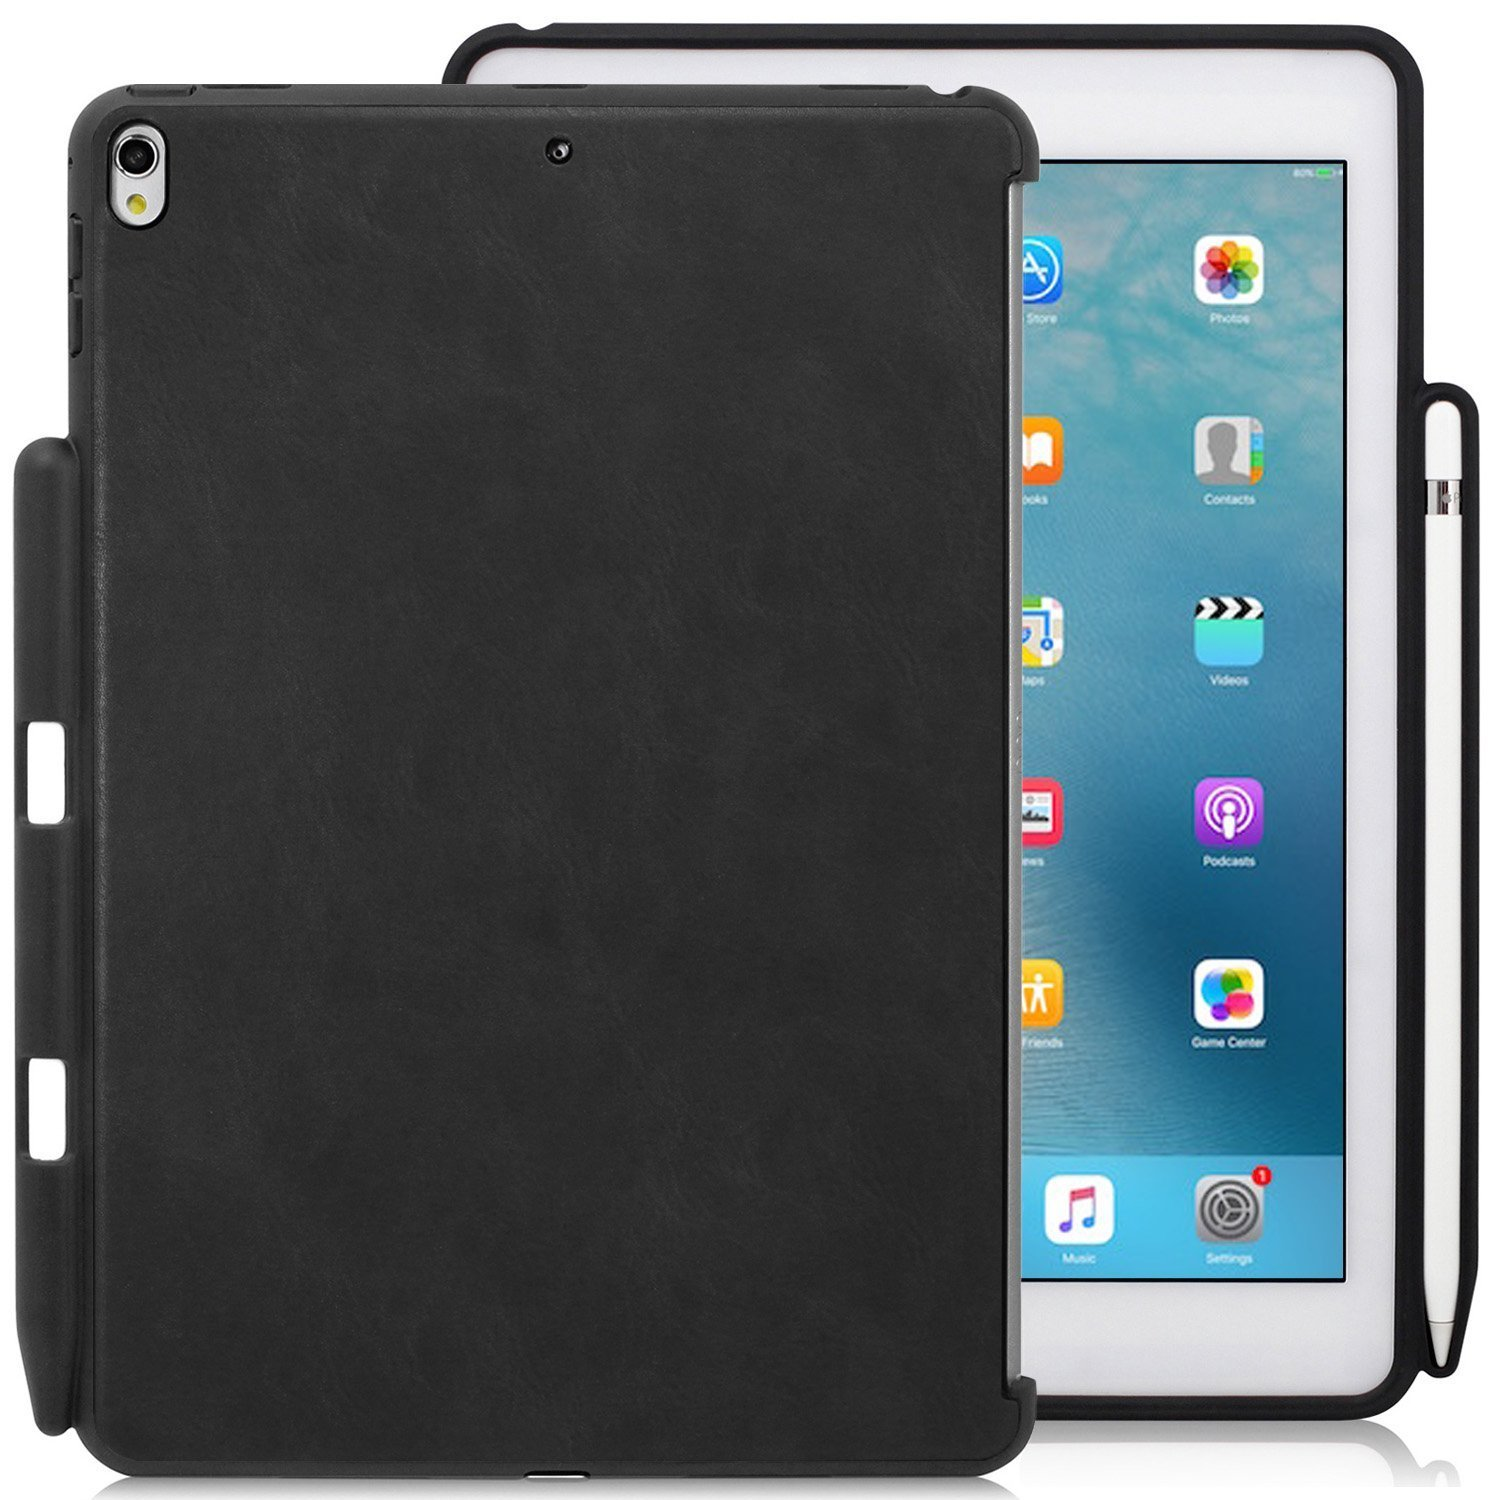 I Pad Pro 10.5 Inch Black Pu Leather Case With Pen Holder   Companion Cover   Perfect Match For Apple Smart Keyboard And Cover by Khomo